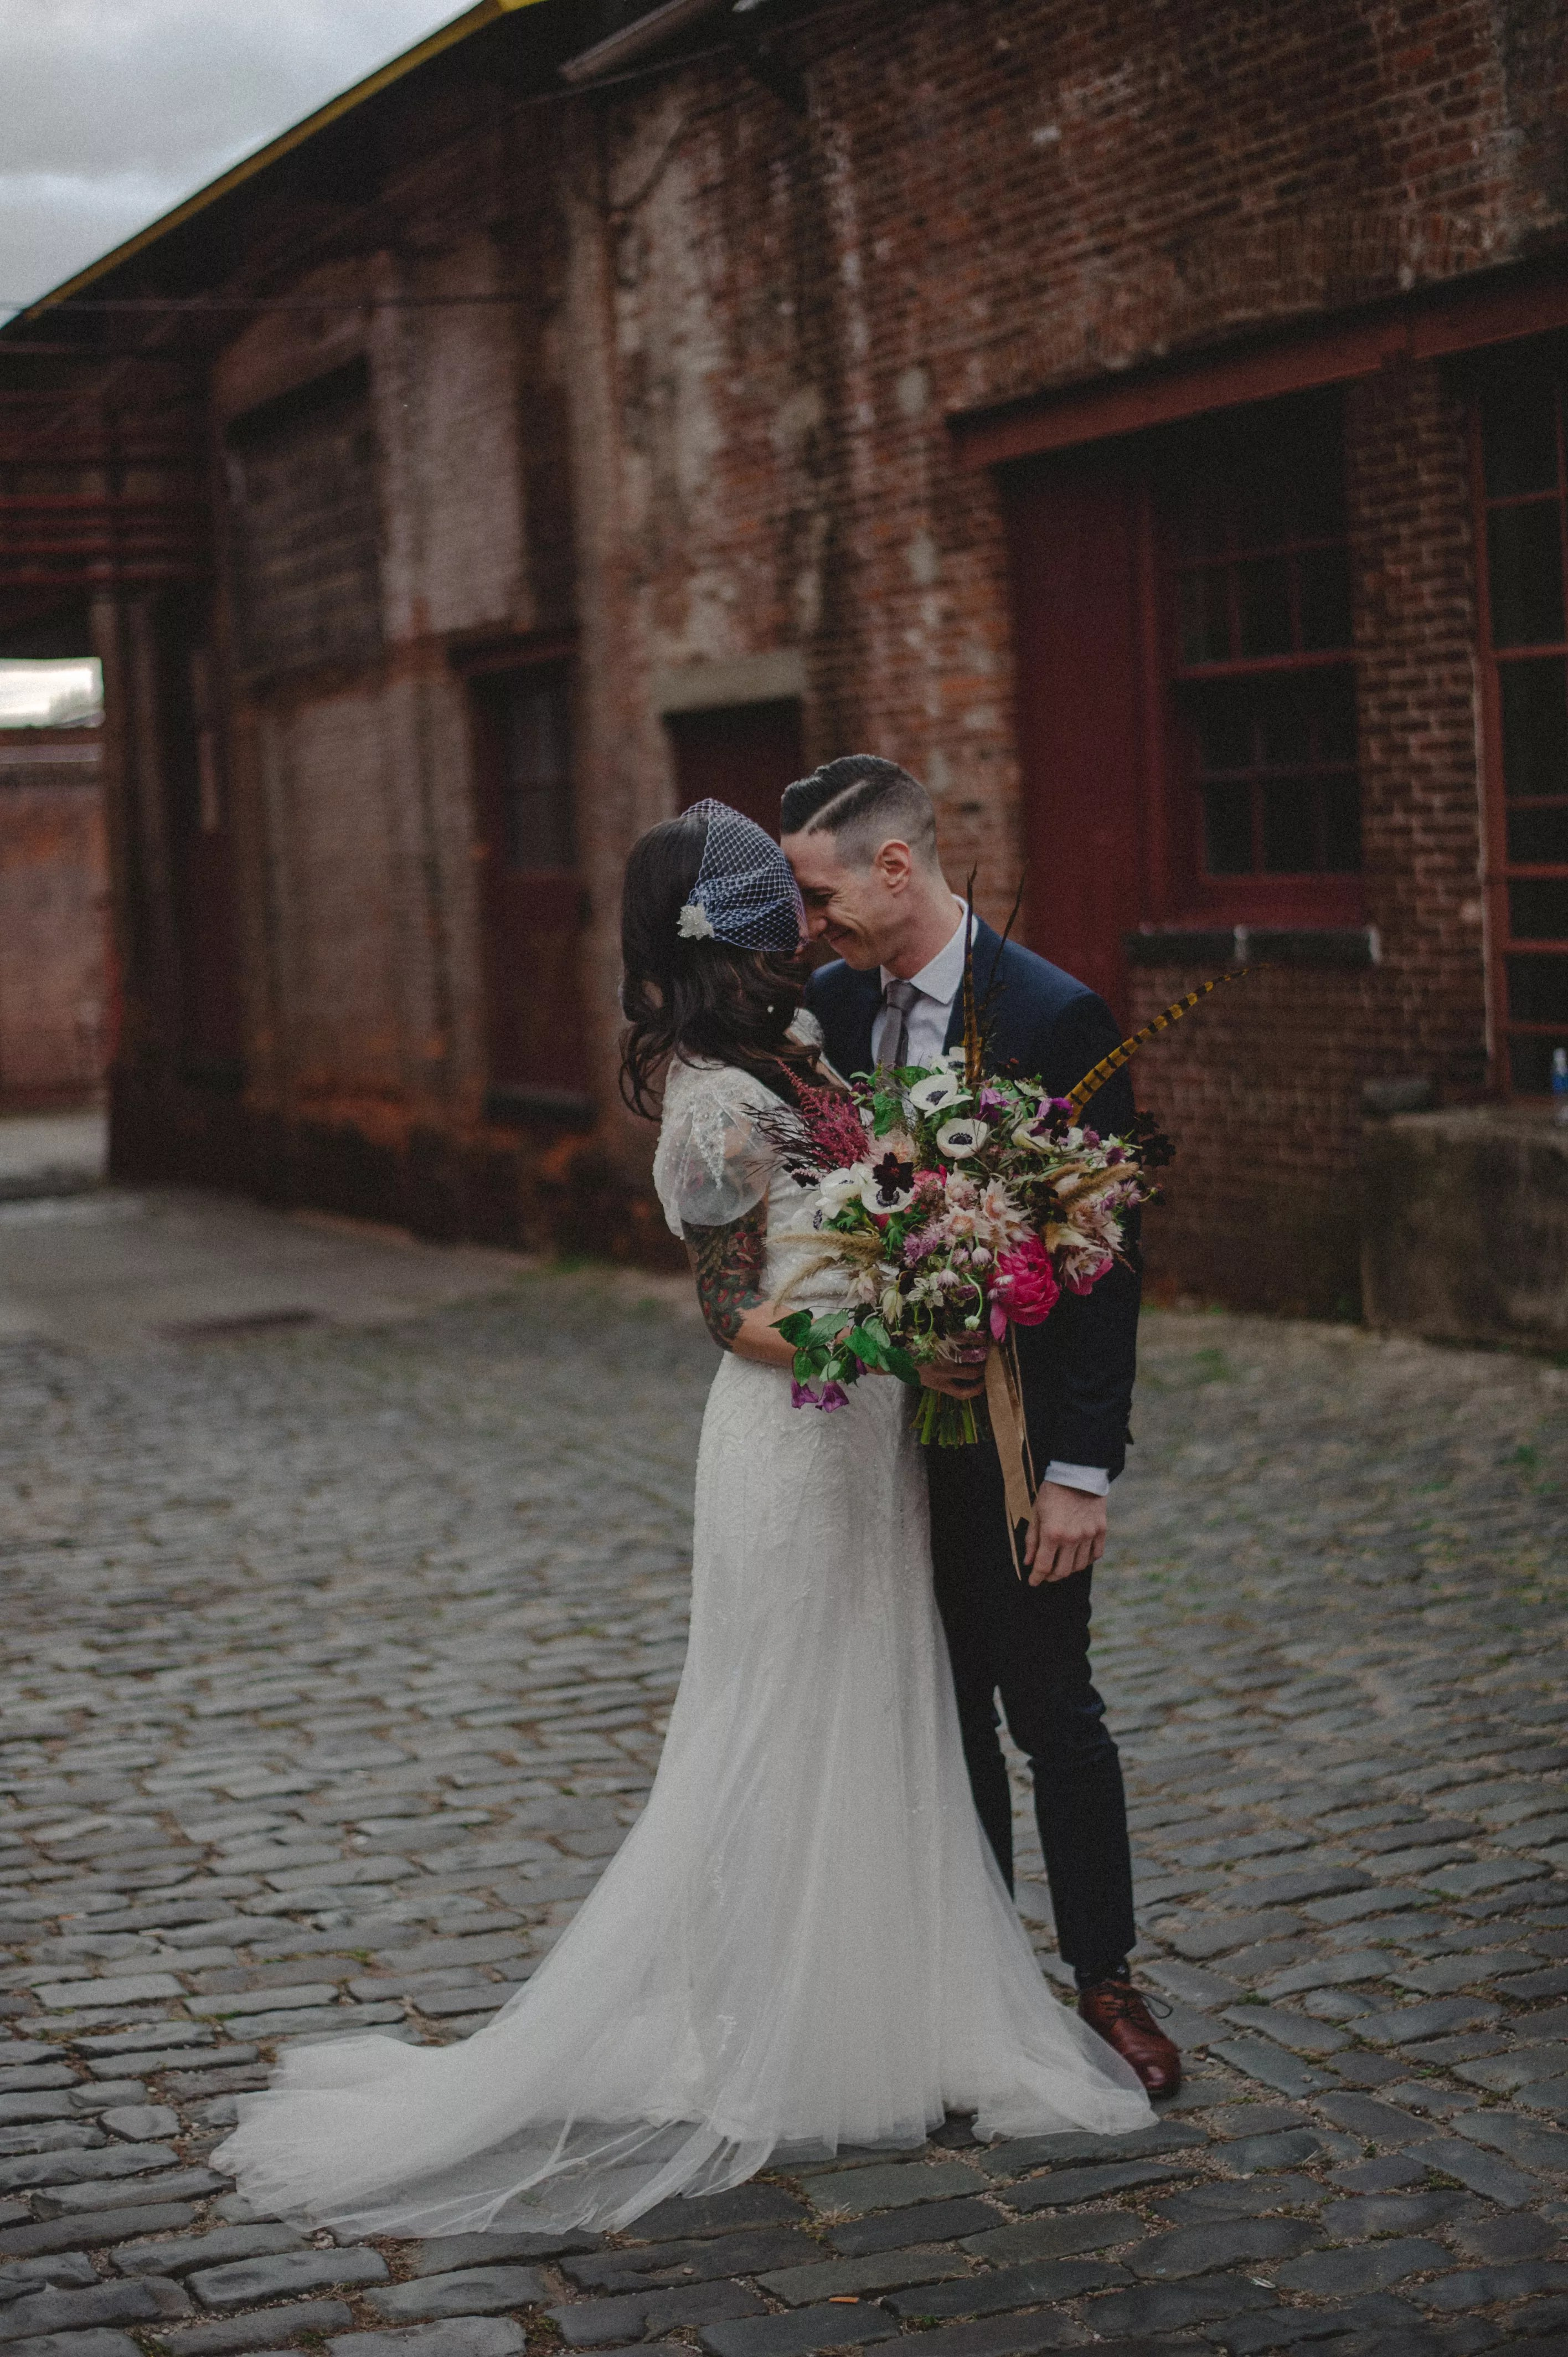 An Urban Modern Wedding At The Art Factory In Paterson